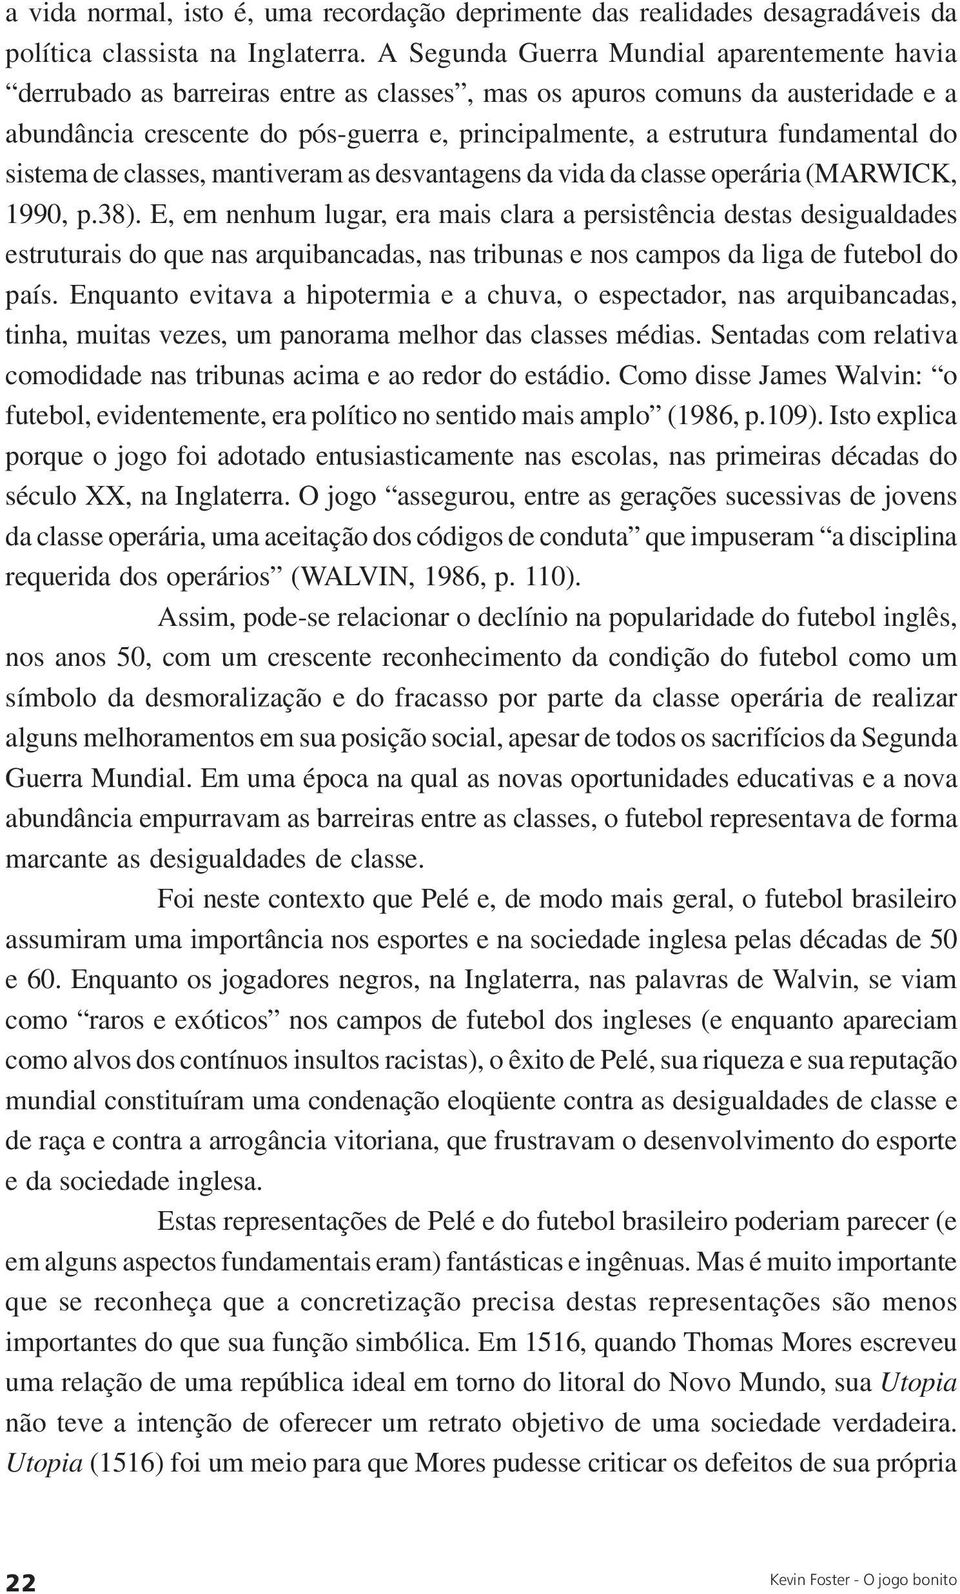 fundamental do sistema de classes, mantiveram as desvantagens da vida da classe operária (MARWICK, 1990, p.38).